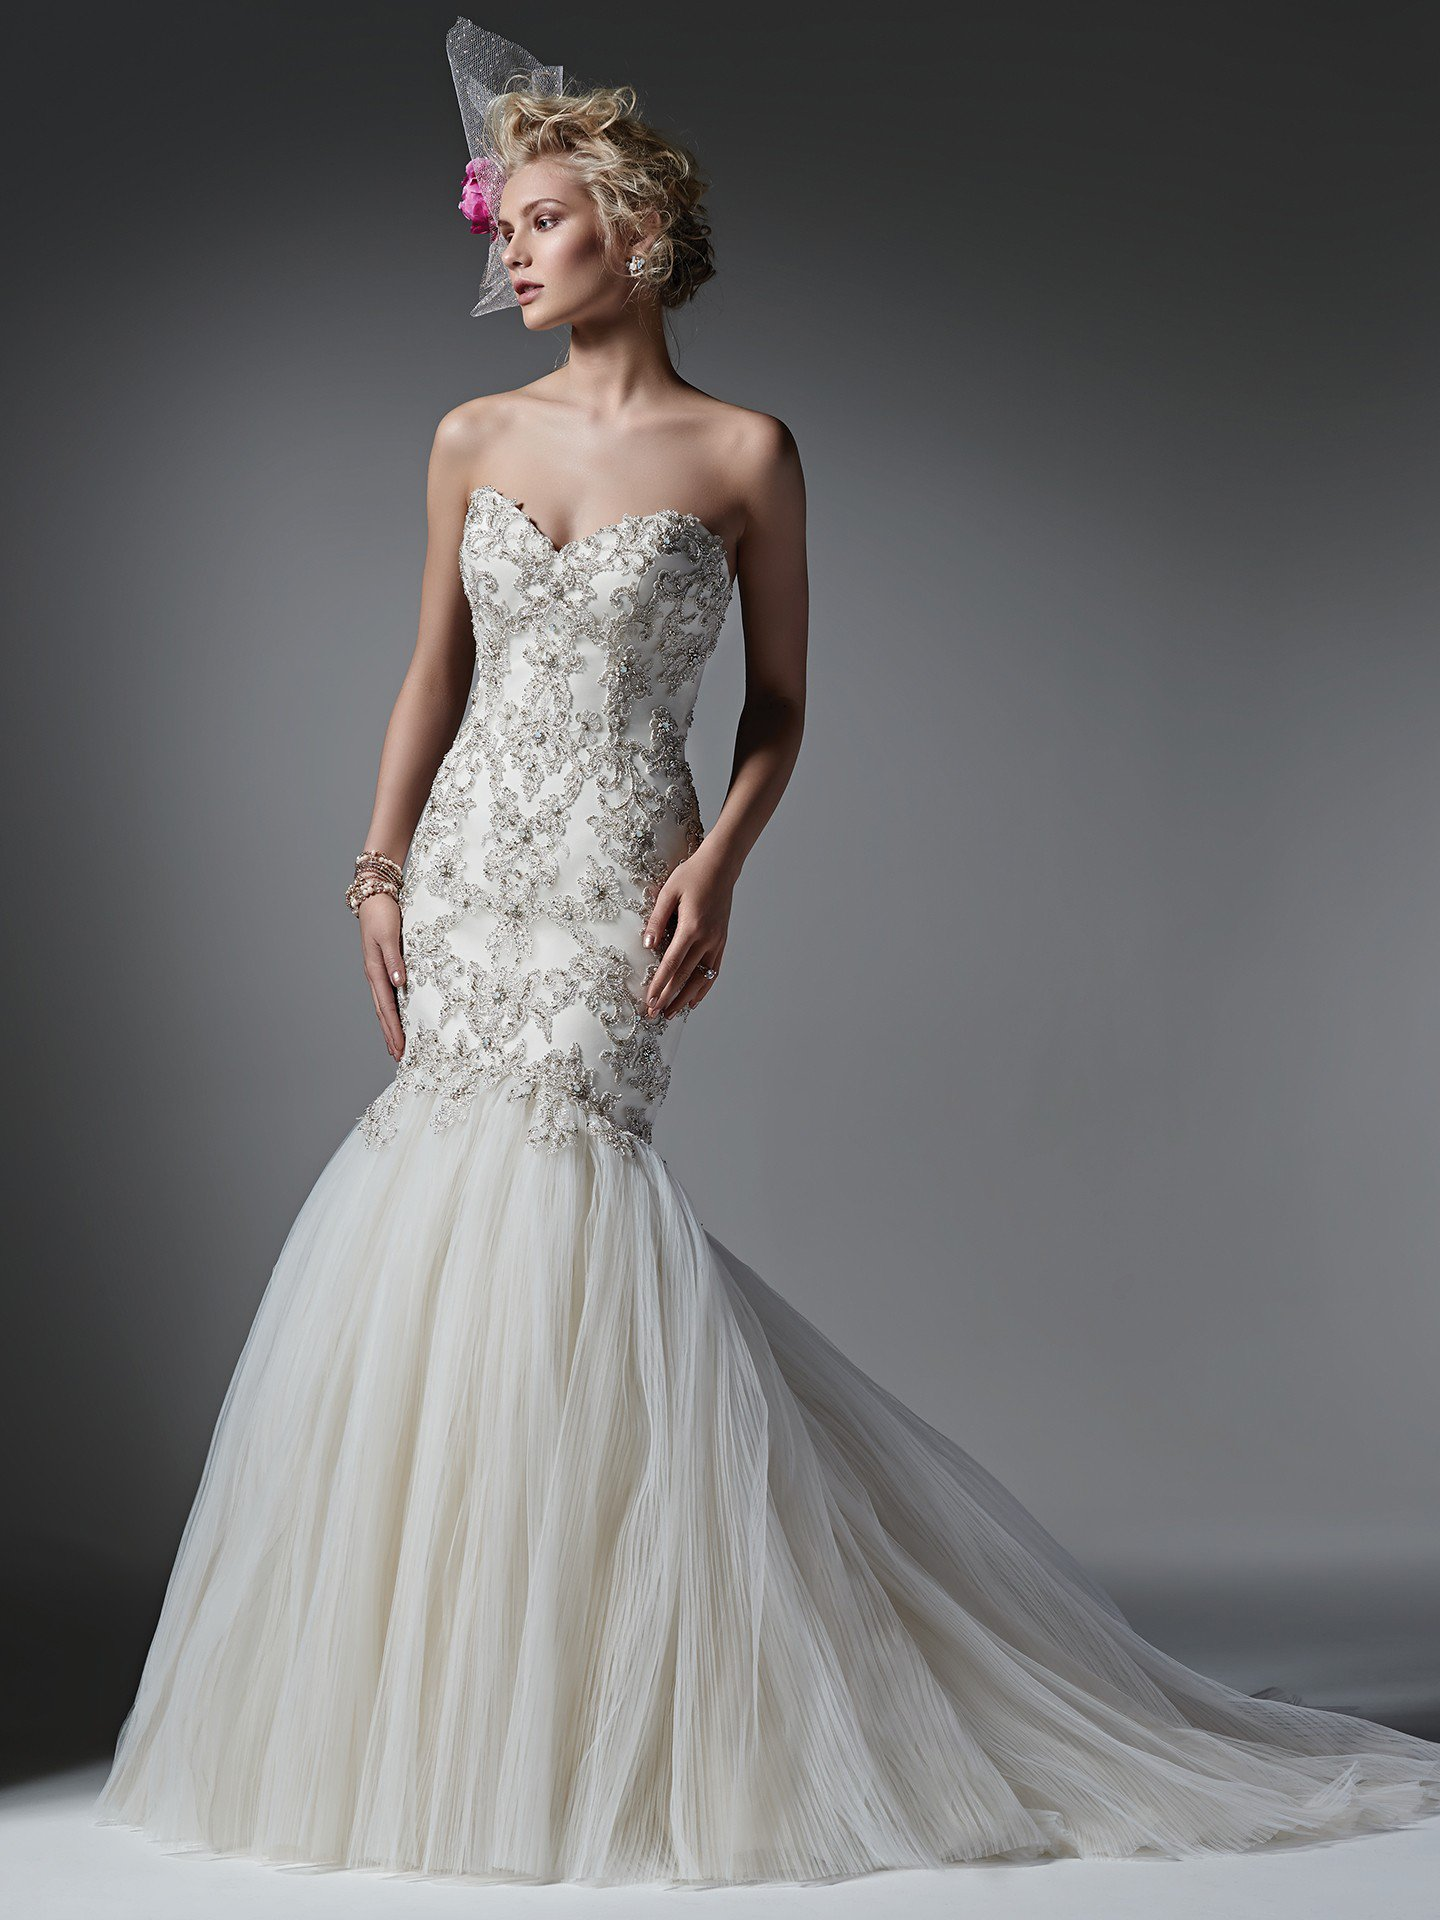 Sottero &#038; Midgley <br> Radience<br>Size 10 Was £1,200 Now £850